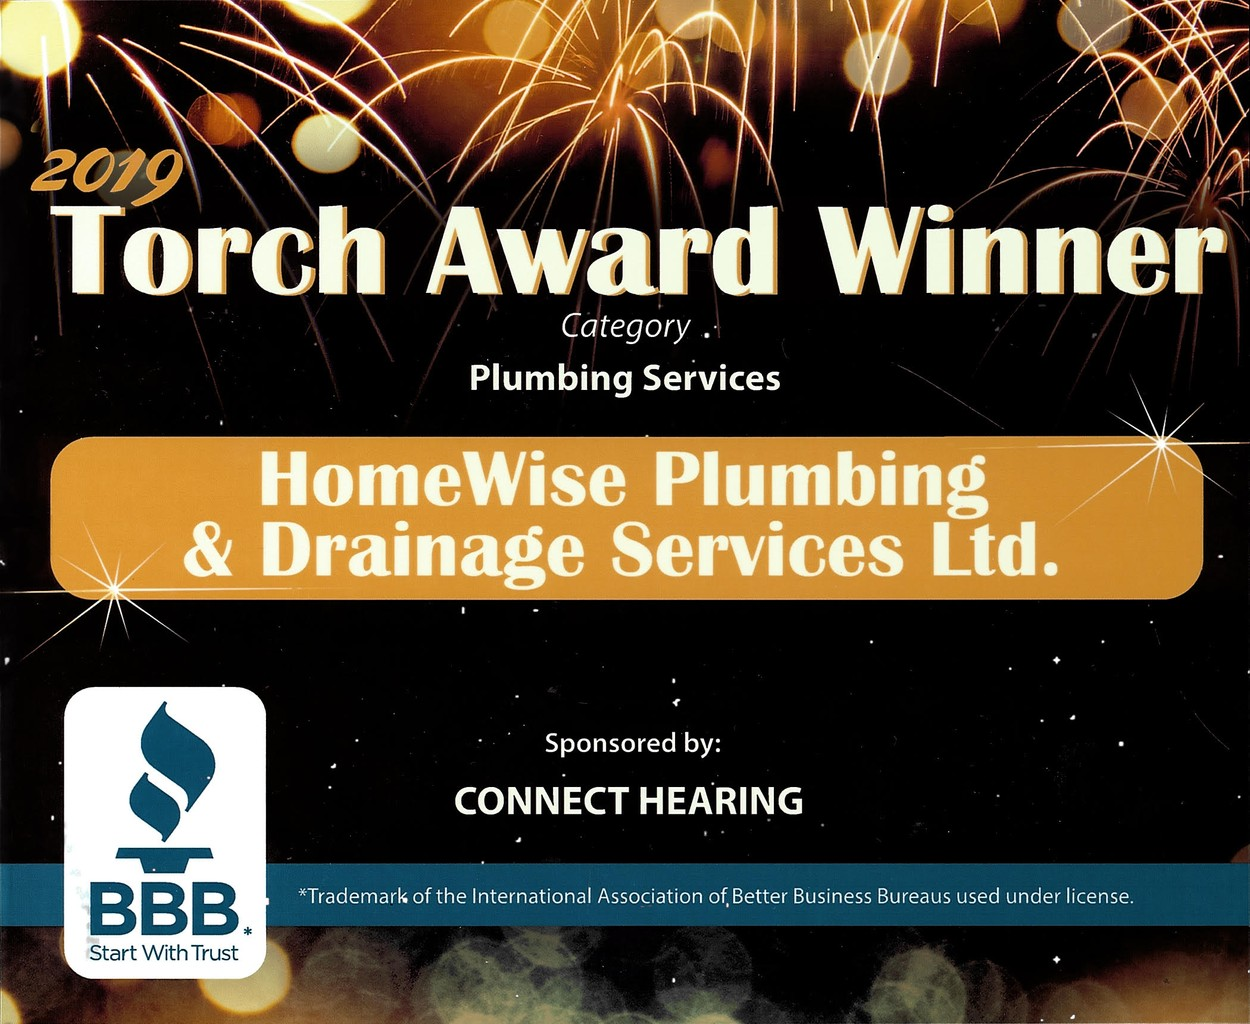 Photo uploaded by Homewise Plumbing & Drainage